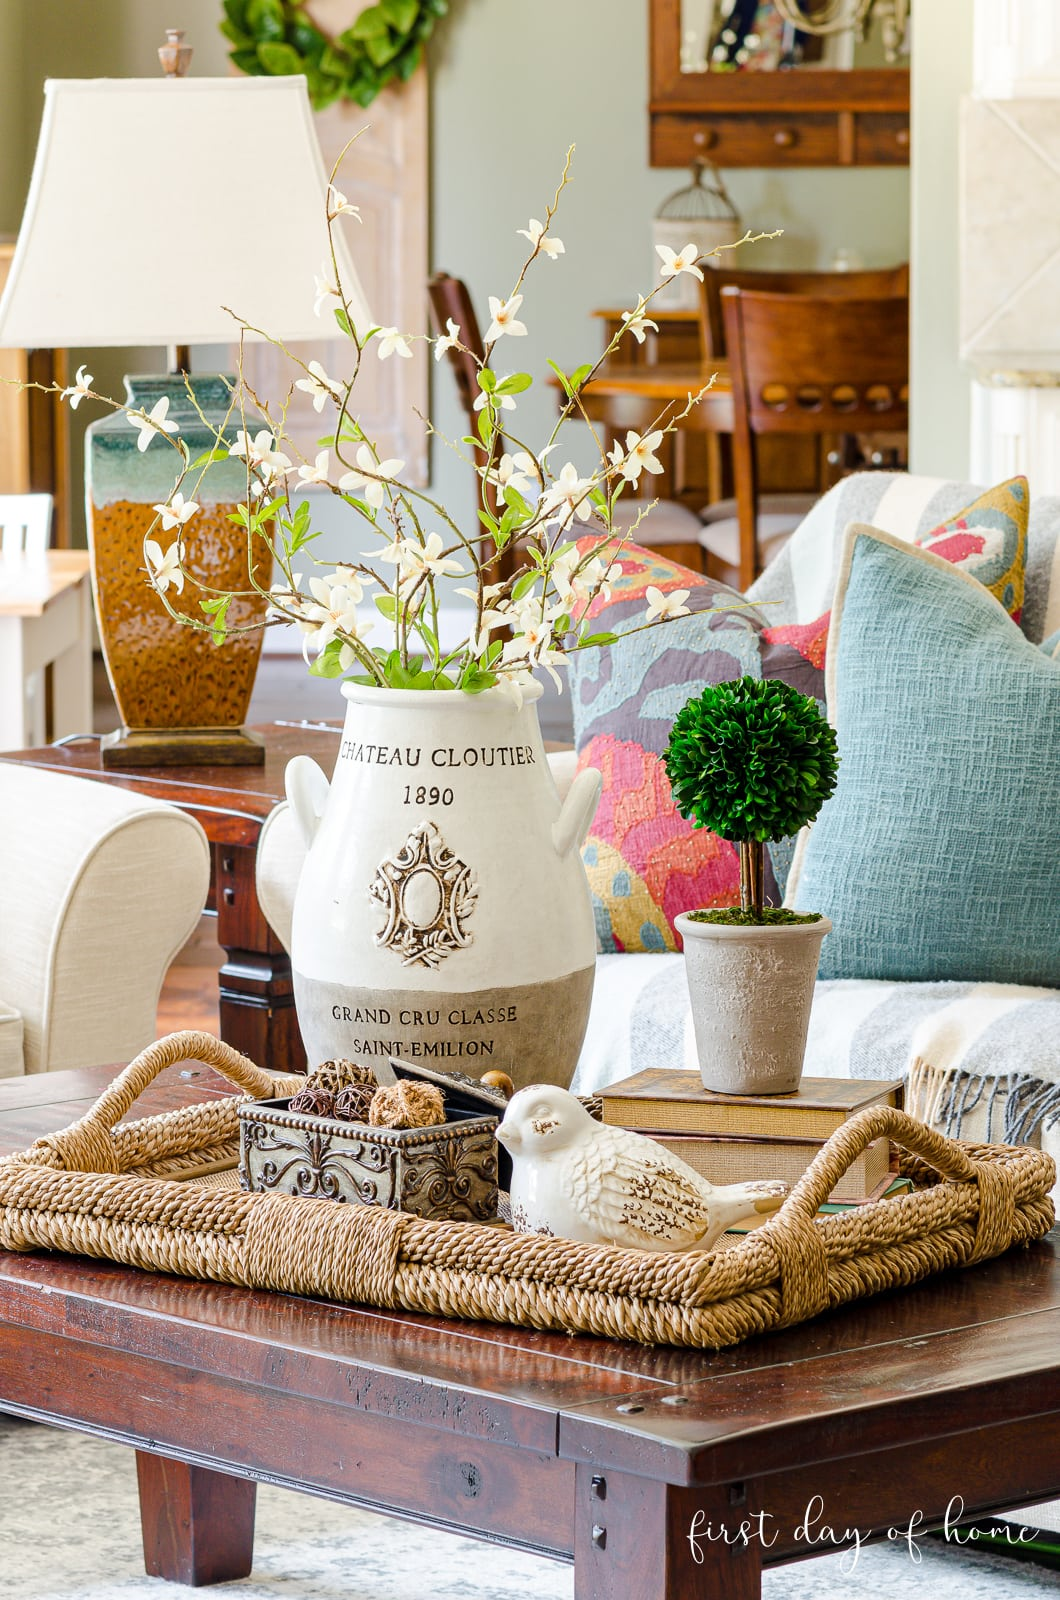 Coffee table decor ideas with french country urn, white ceramic decorative accent, books, boxwood topiary and rattan spheres